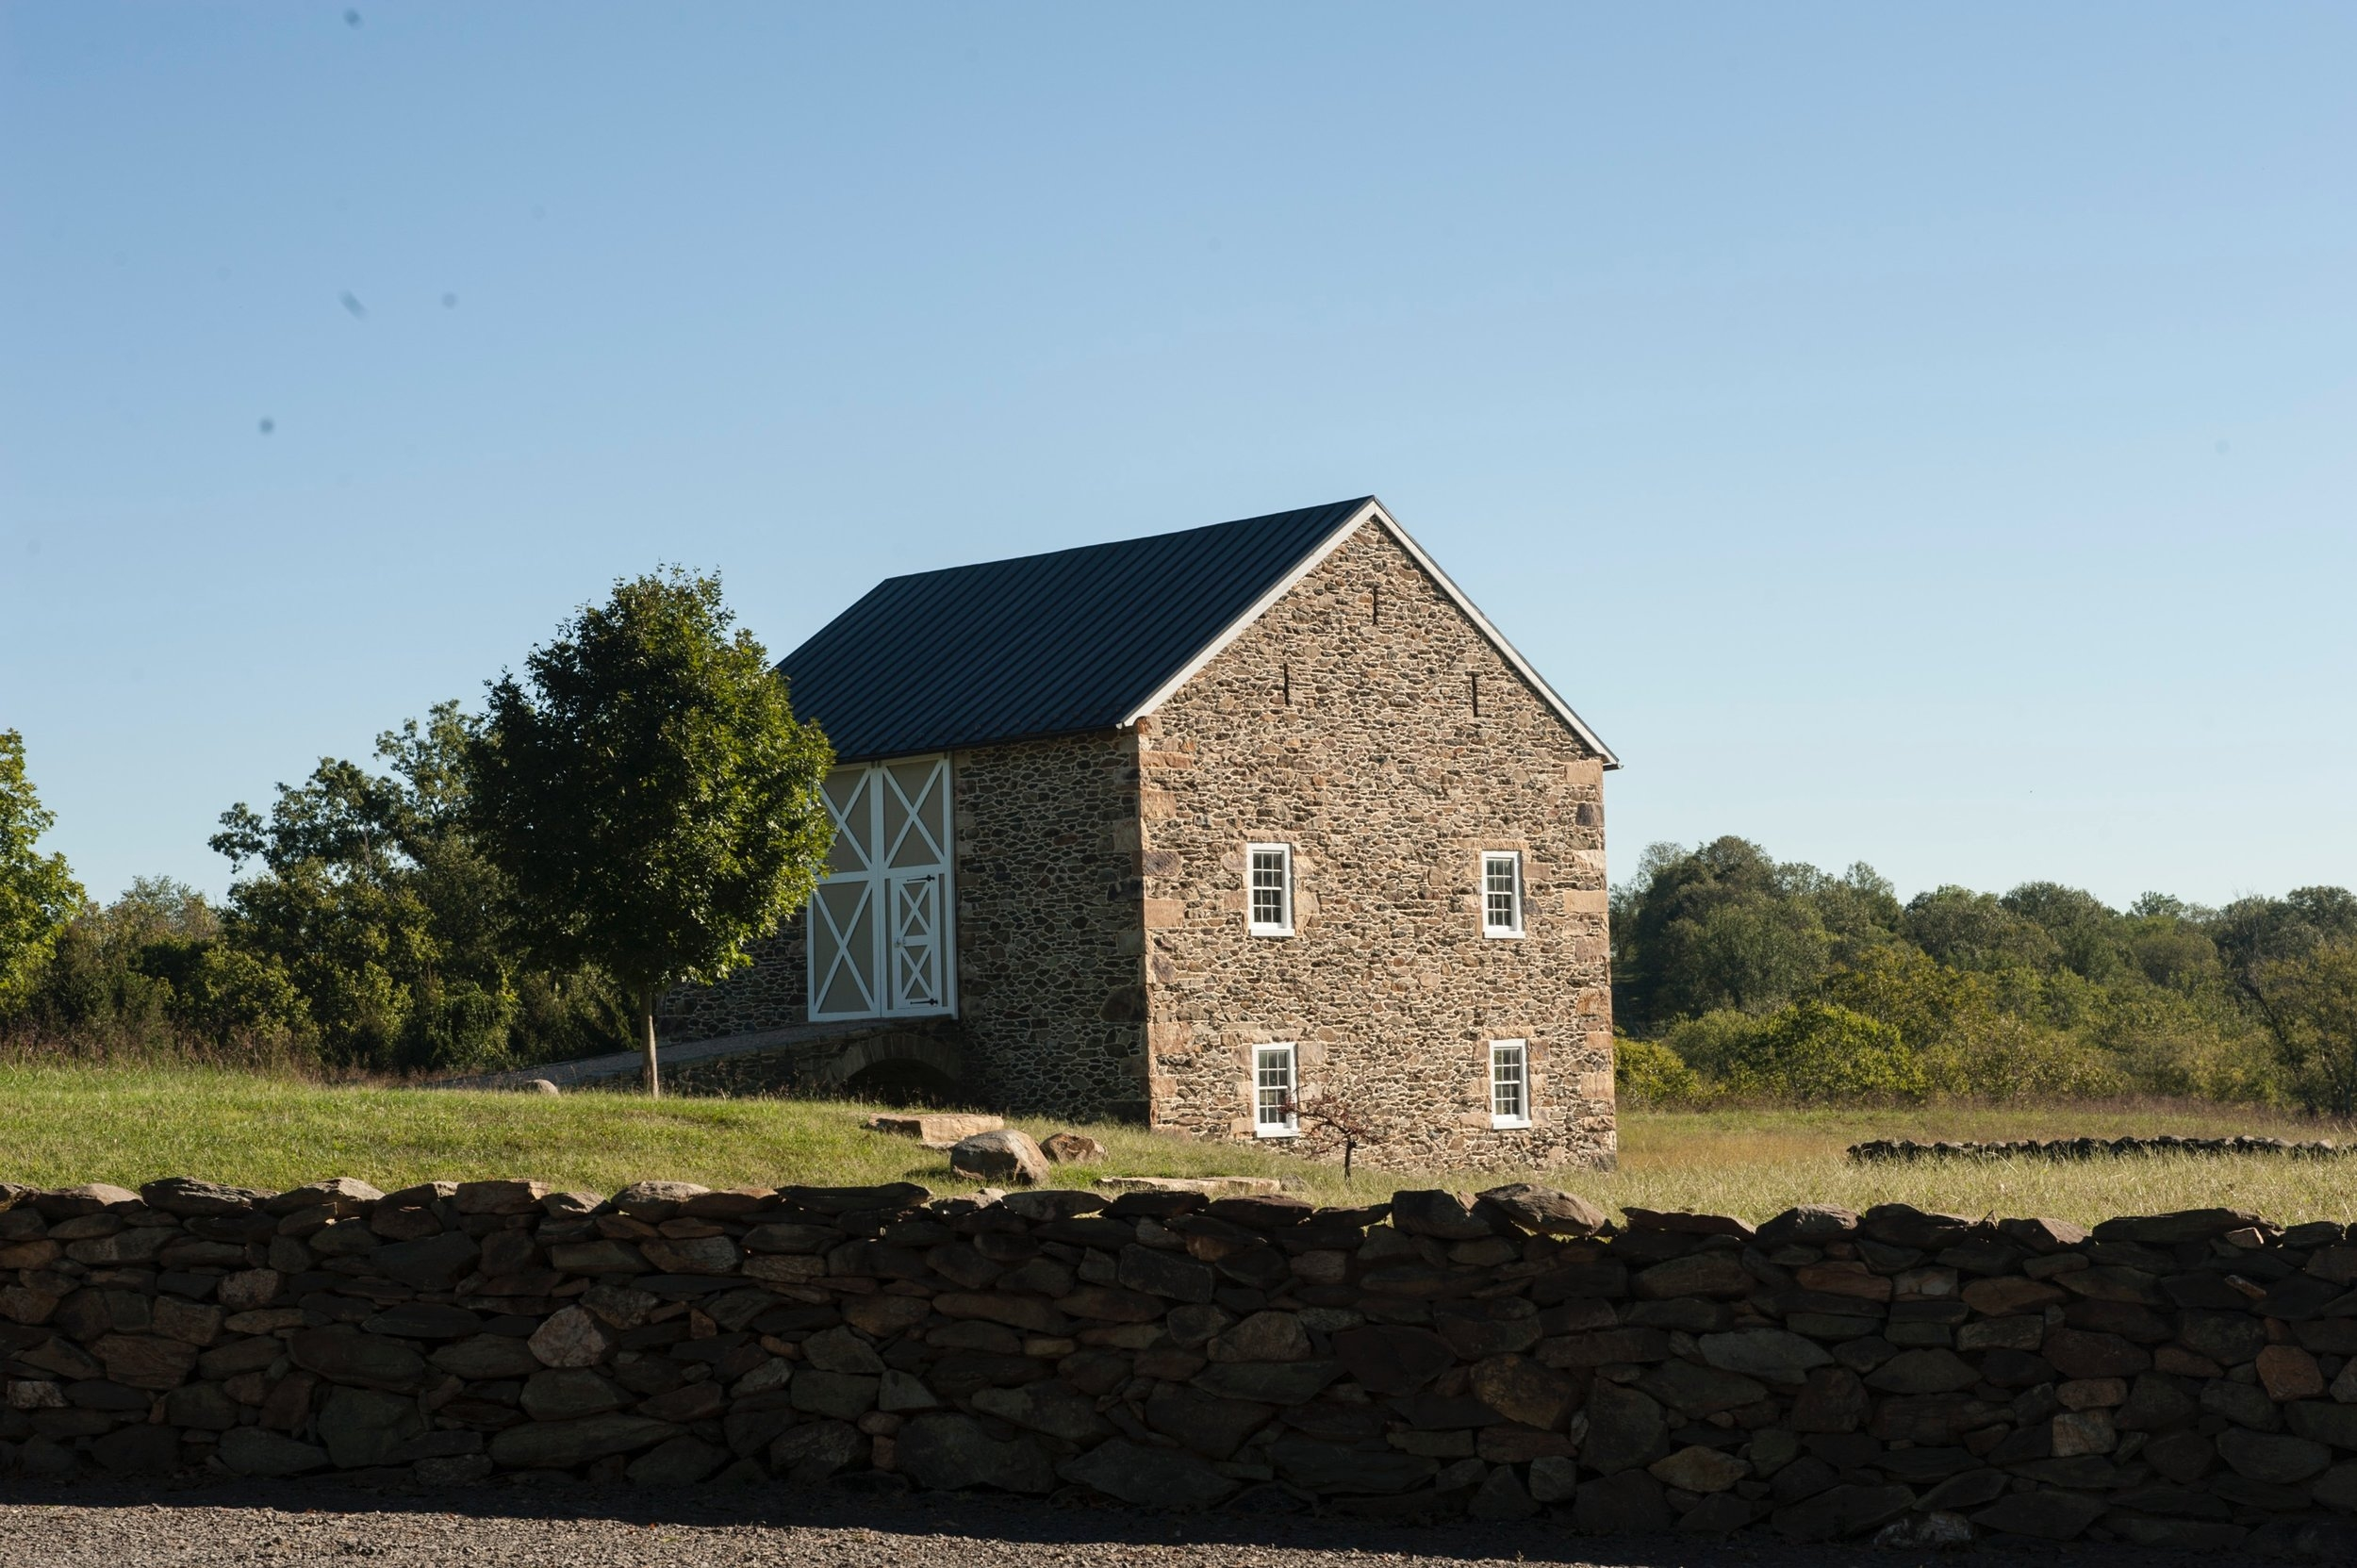 View of the stone barn from the Crofts' home.